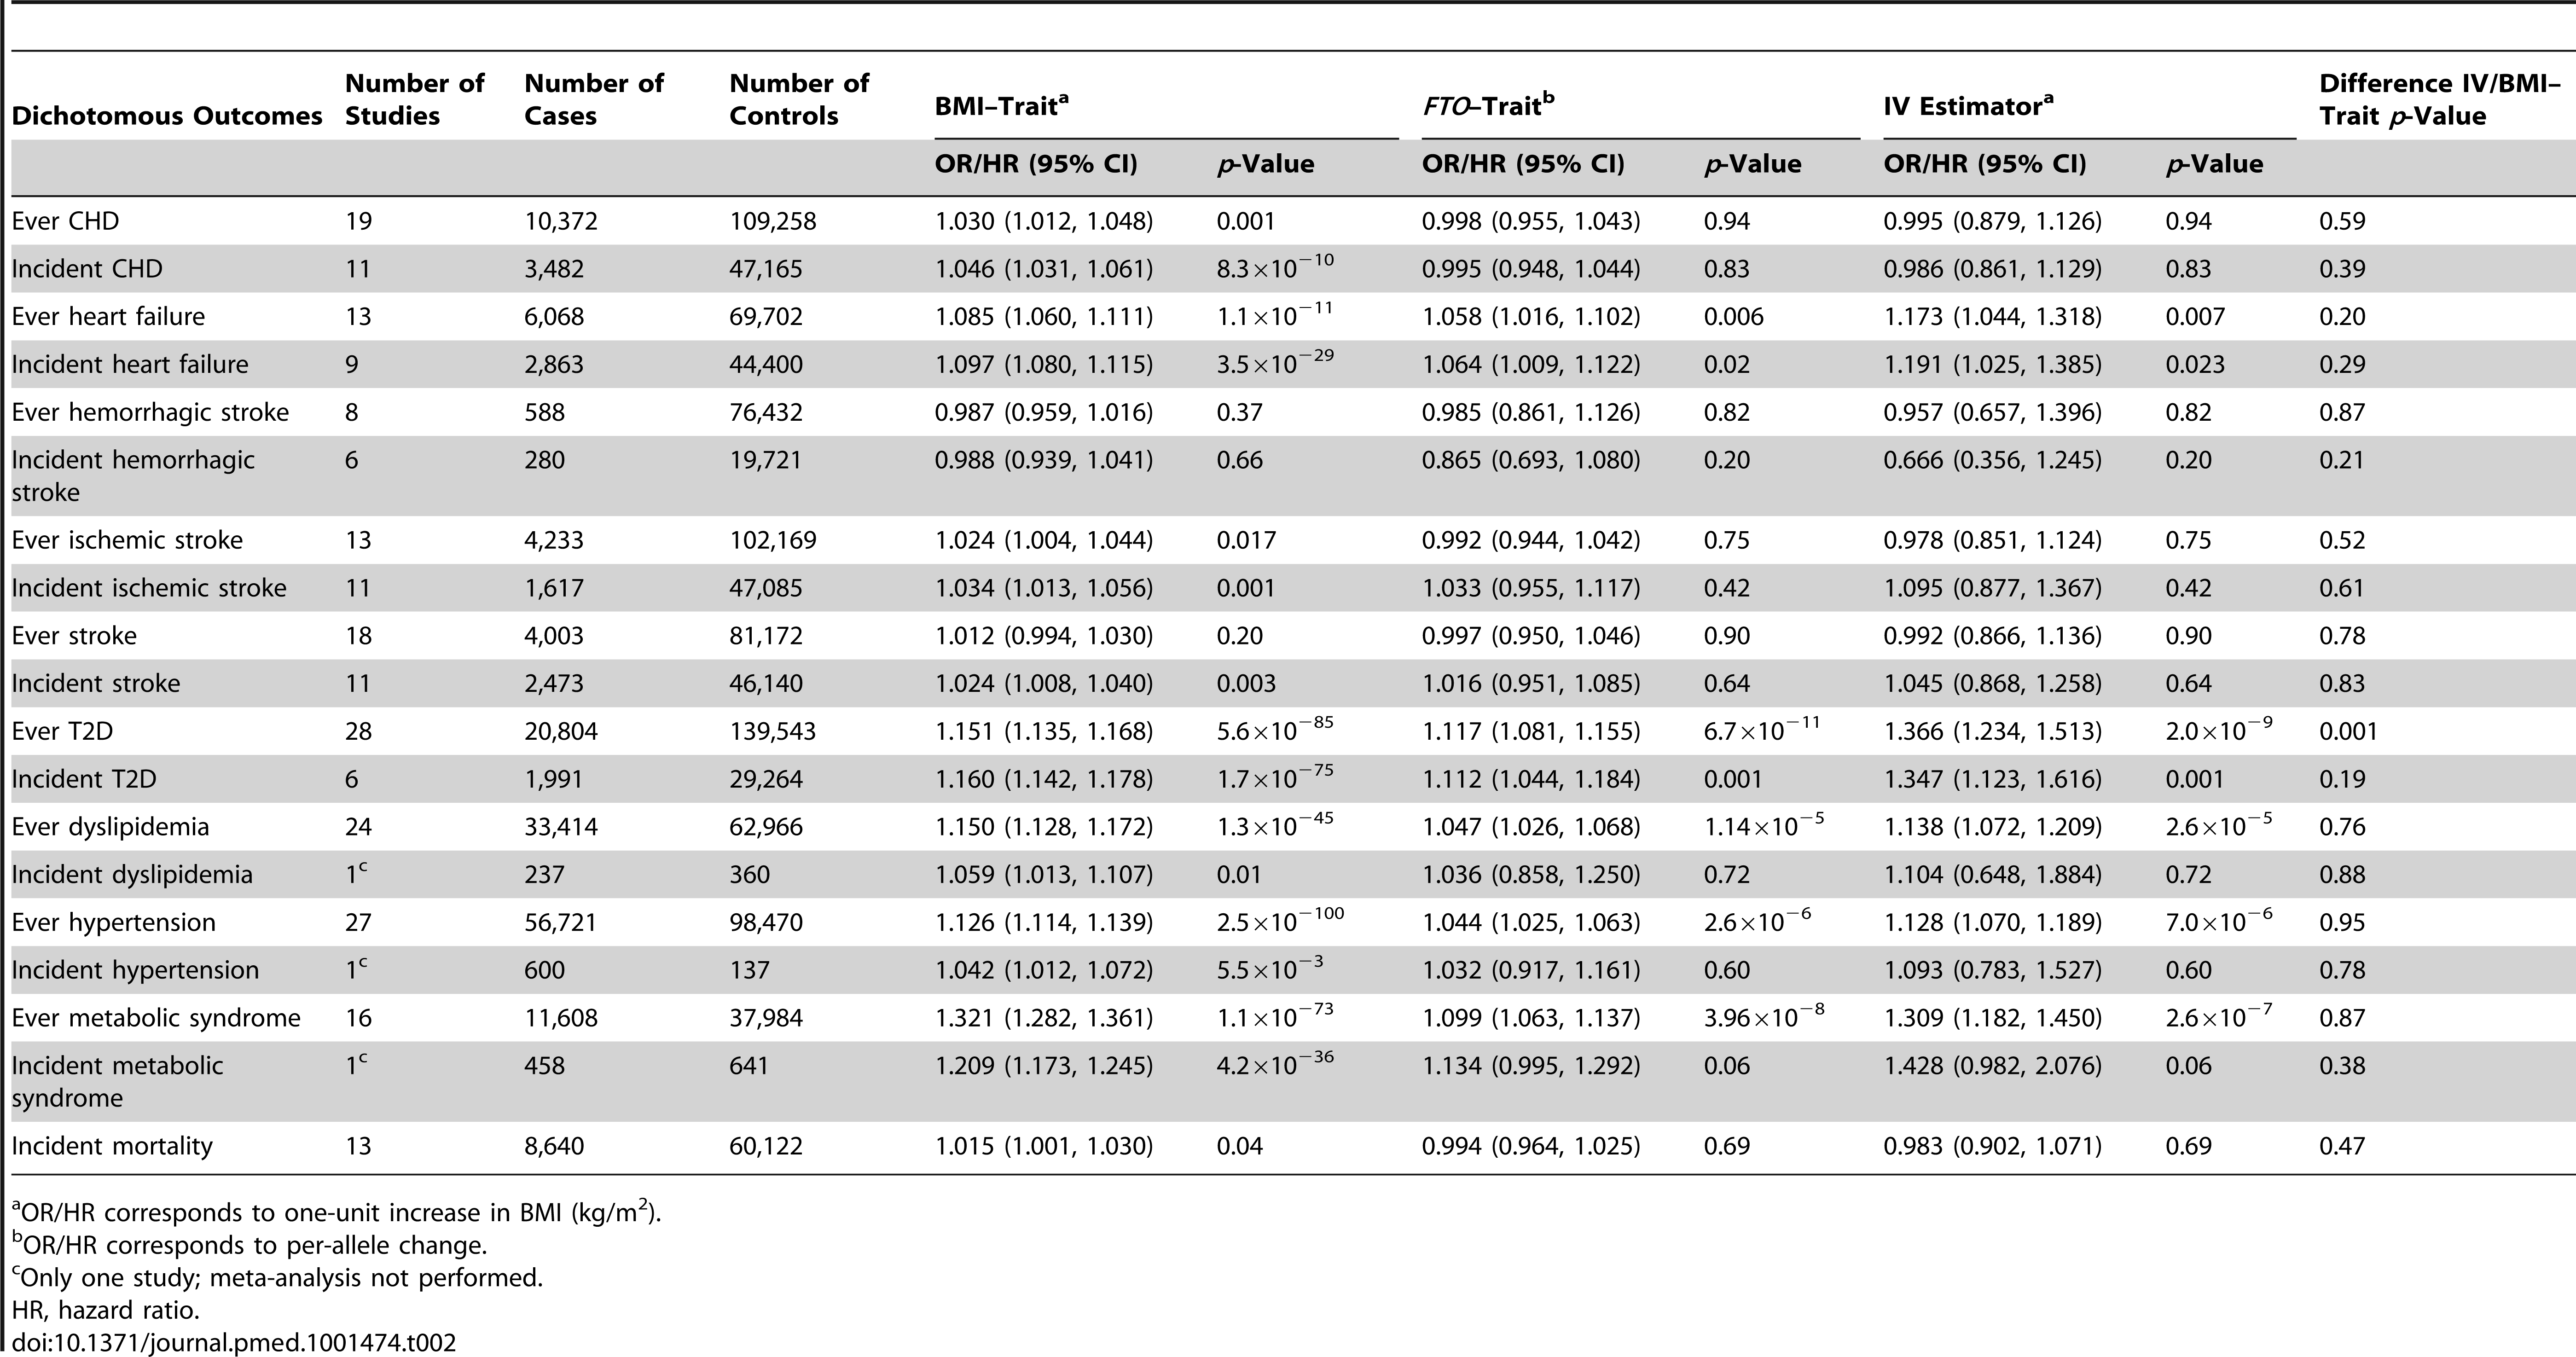 Meta-analysis results of Mendelian randomization analyses on effect of <i>FTO</i>-derived adiposity on cardiovascular and metabolic disease: dichotomous outcomes.